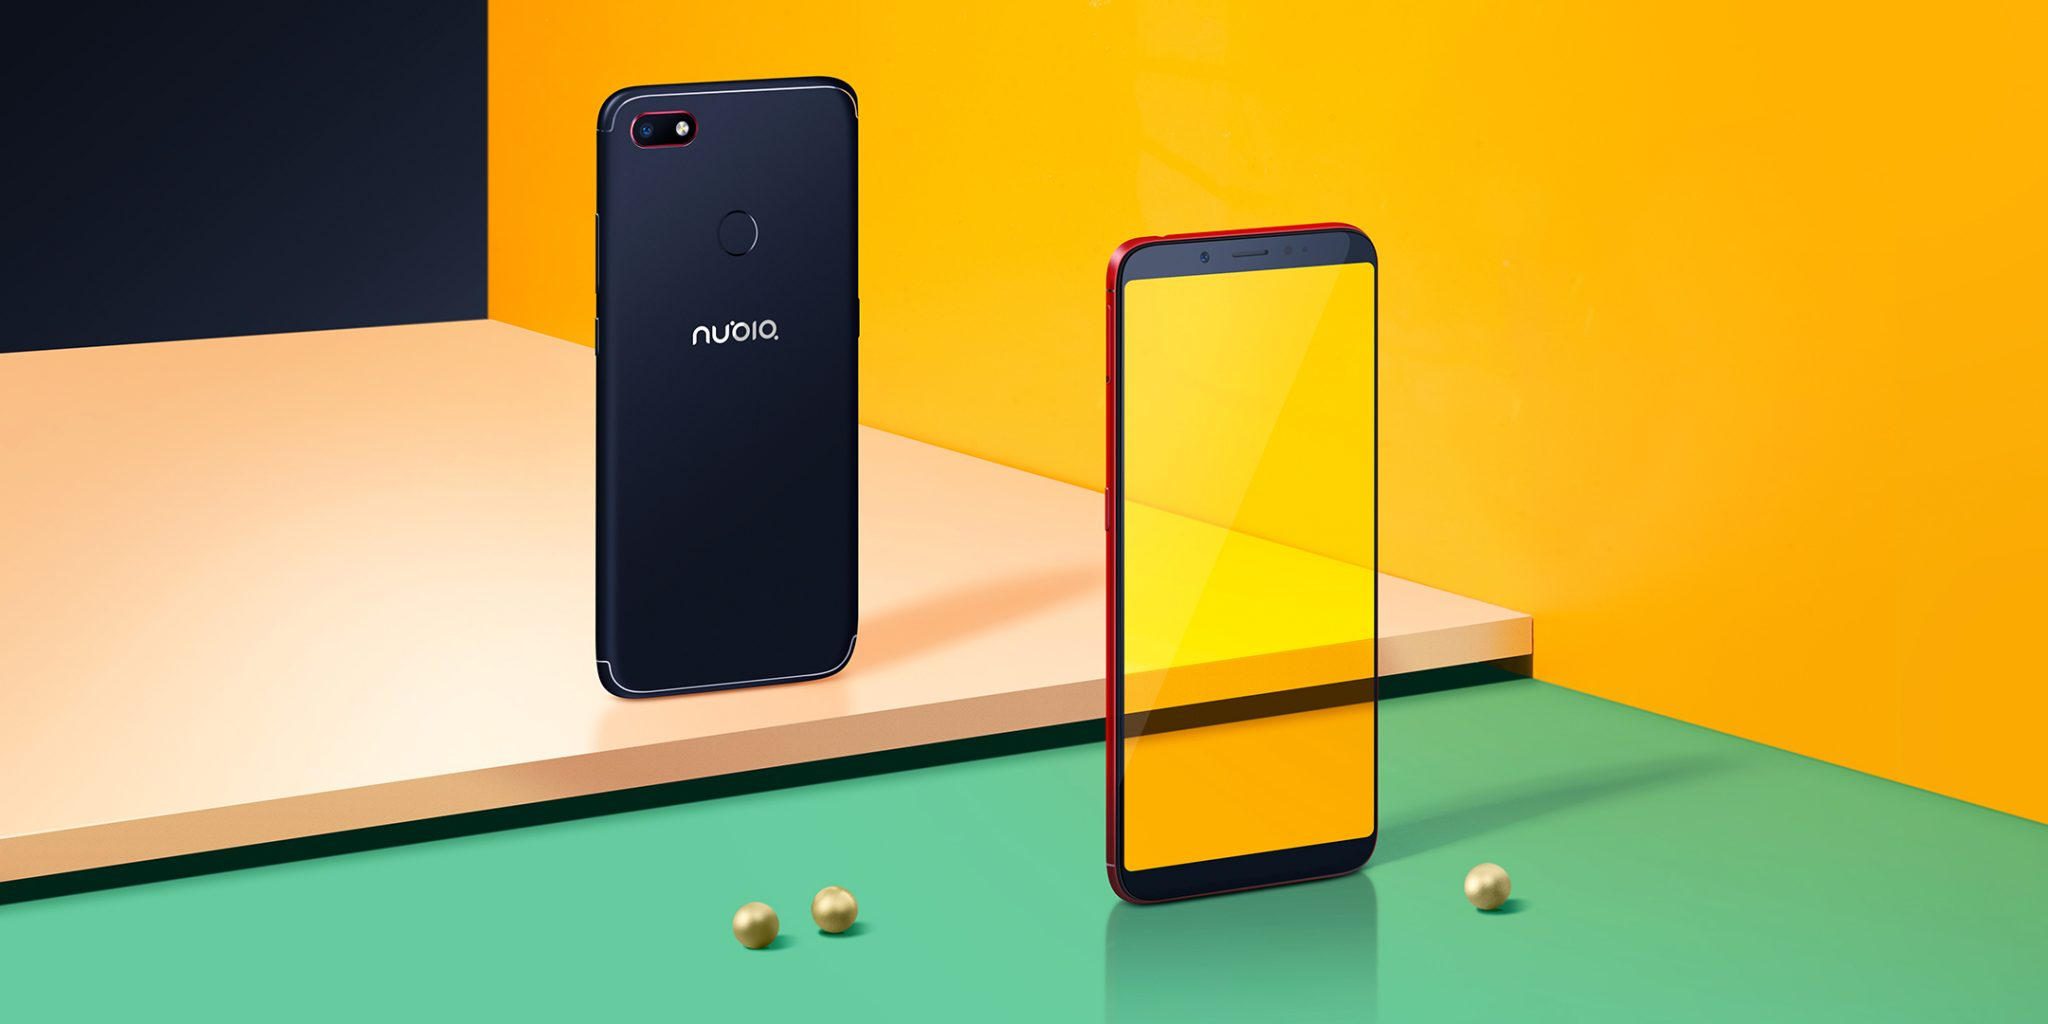 Nubia V18 is now official with Snapdragon 625 and 4,000mAh battery 1